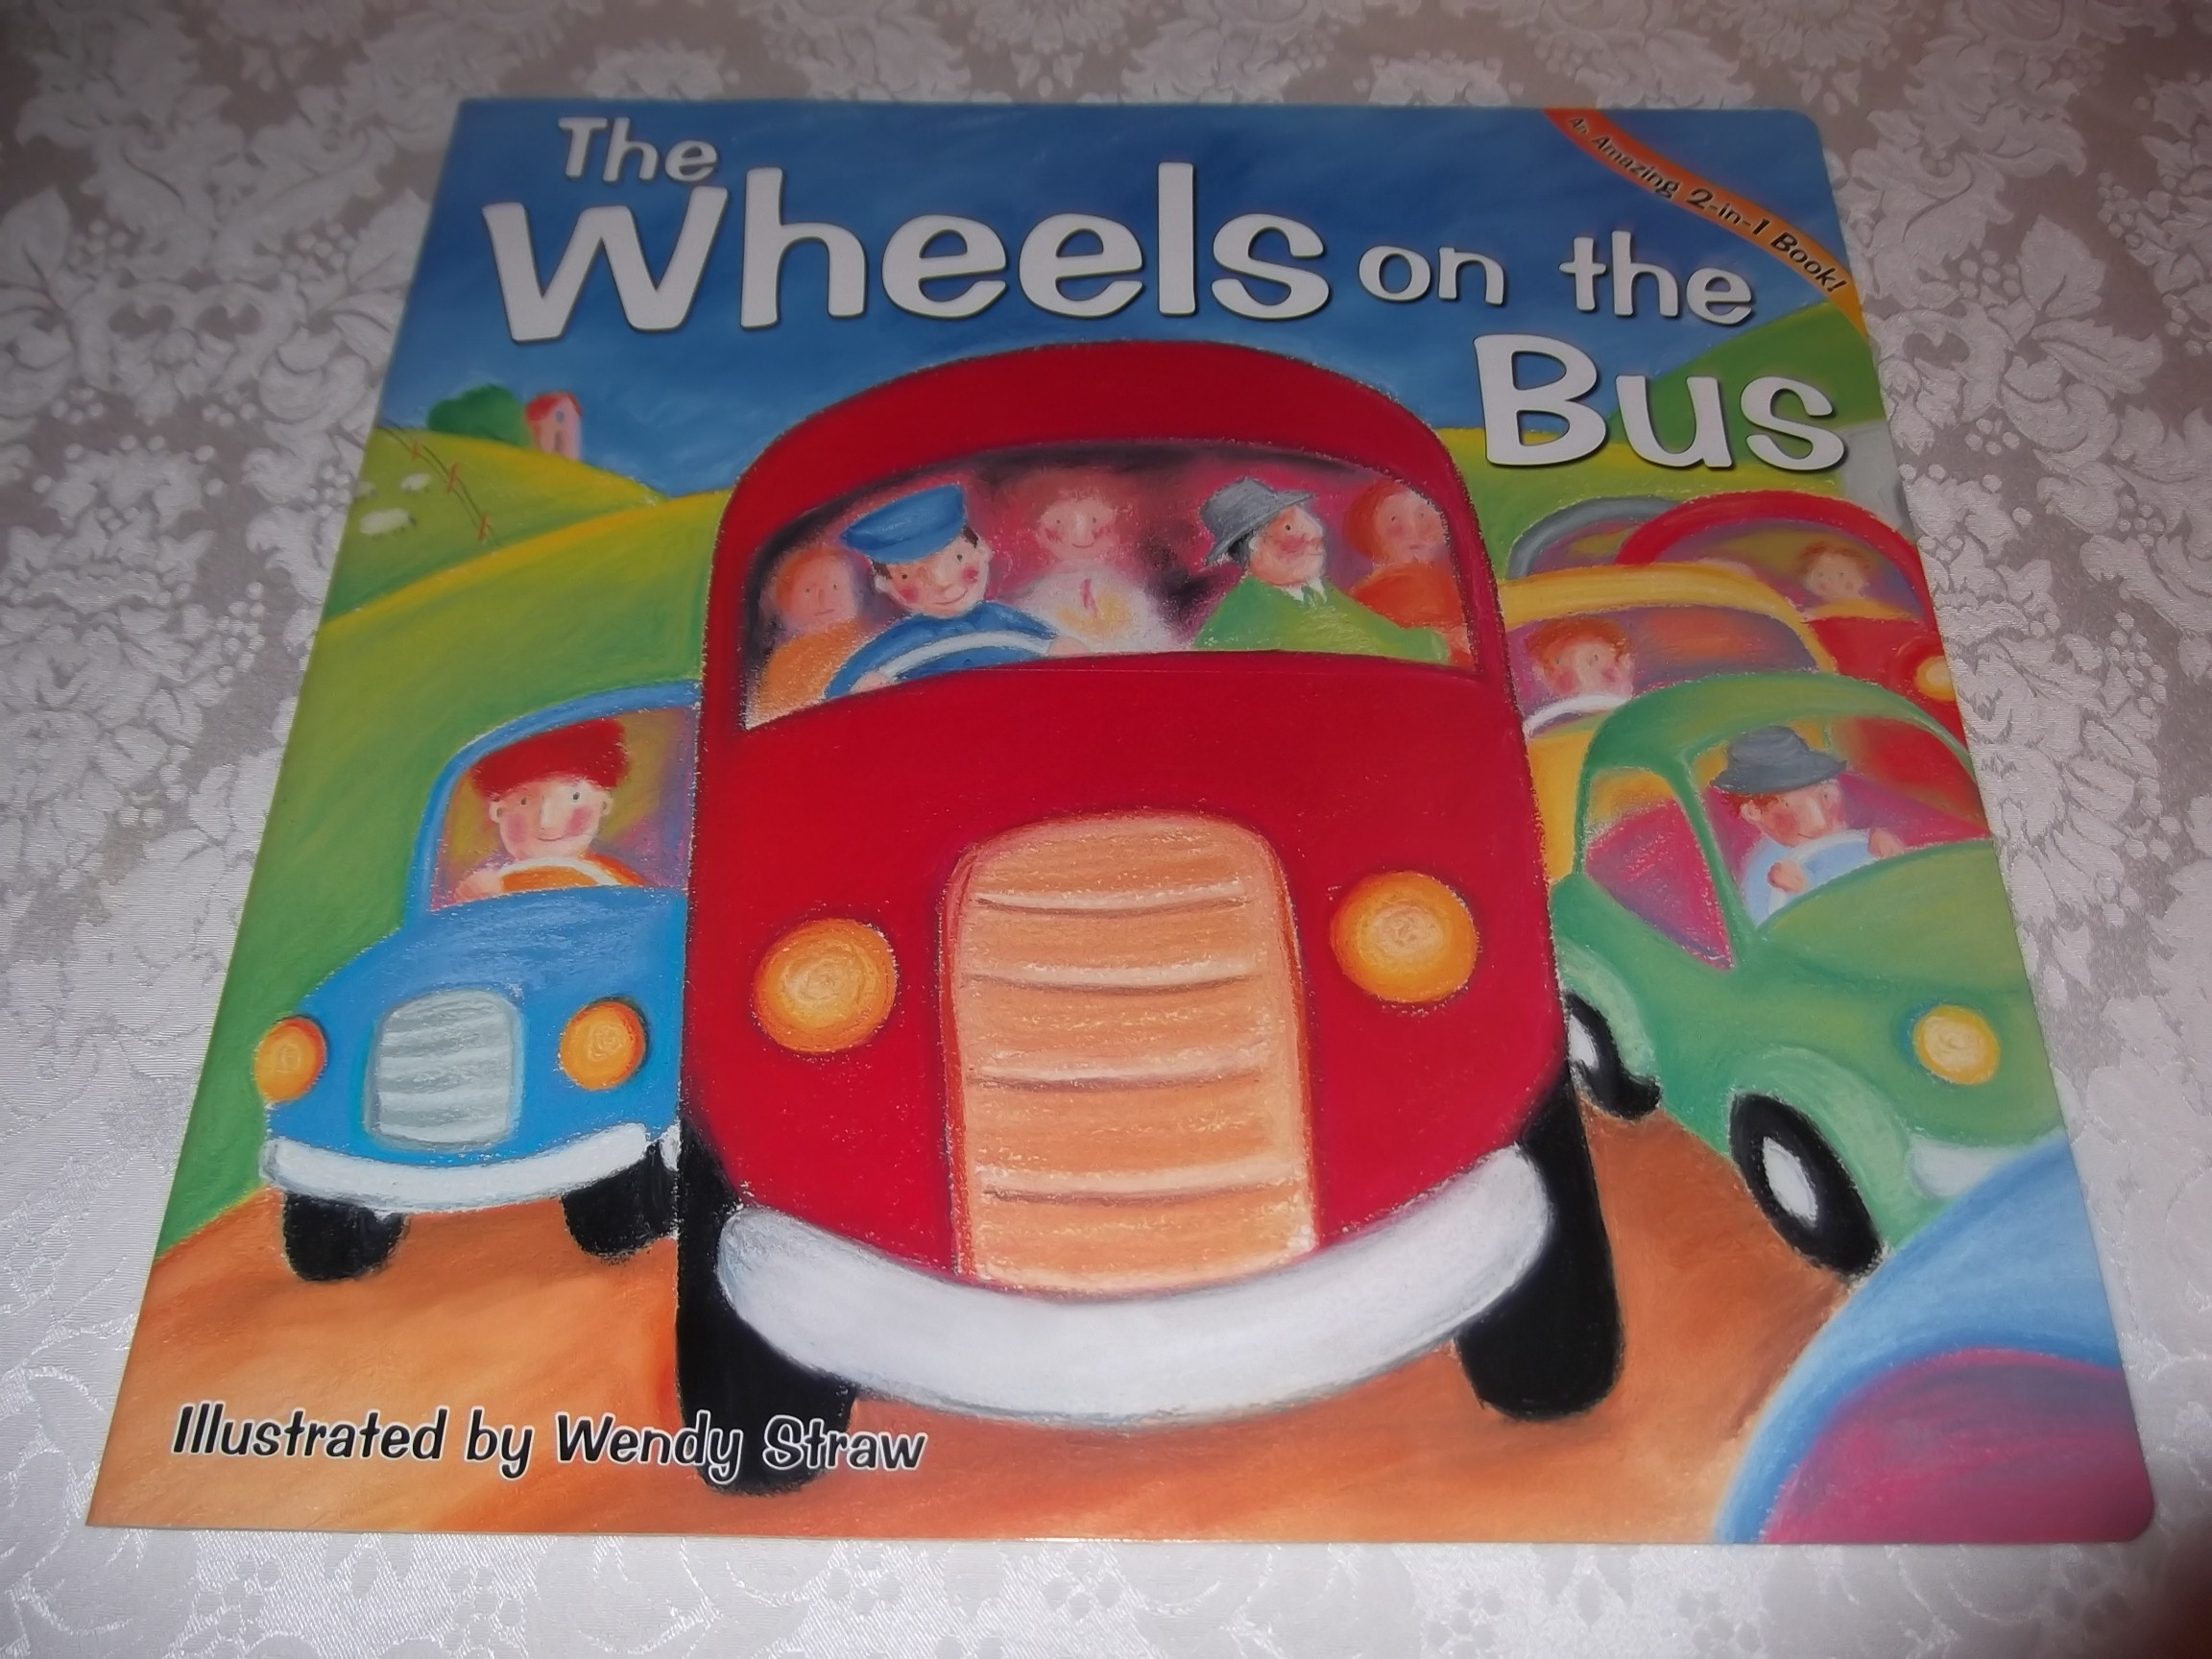 The Wheels on the Bus, If You're Happy and You Know It 2 in 1 Big Book W. Straw